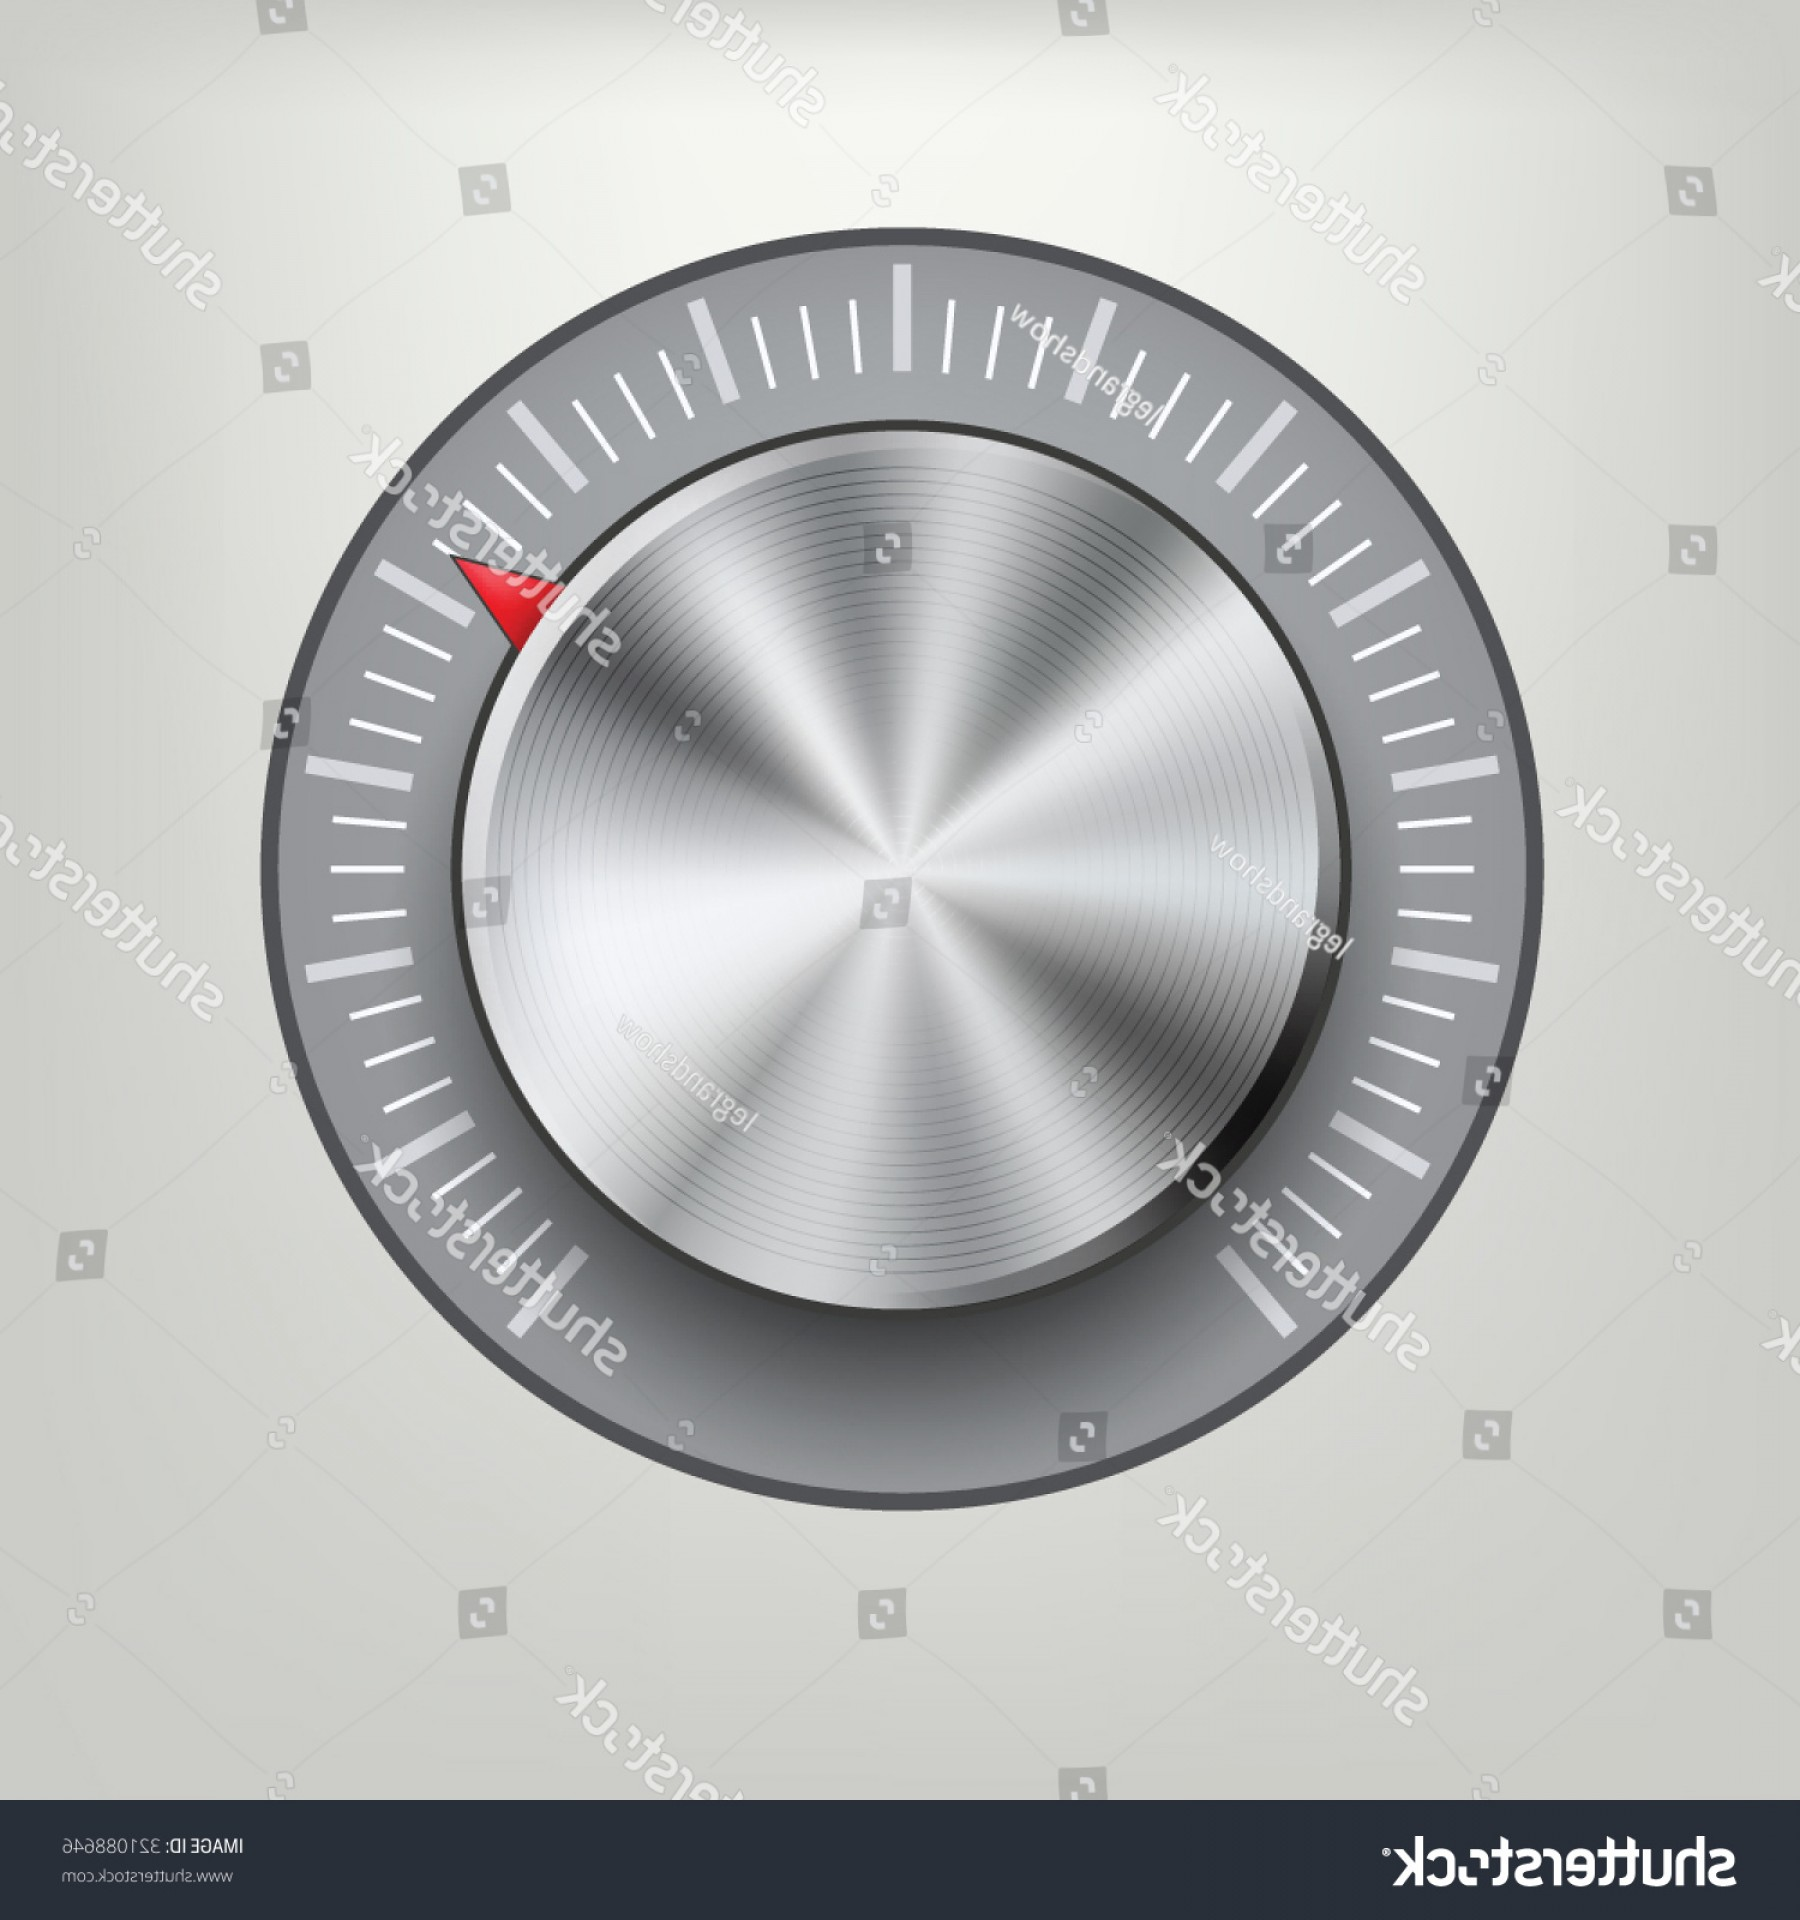 Volume Button Vector: Metal Volume Button Vector Illustration